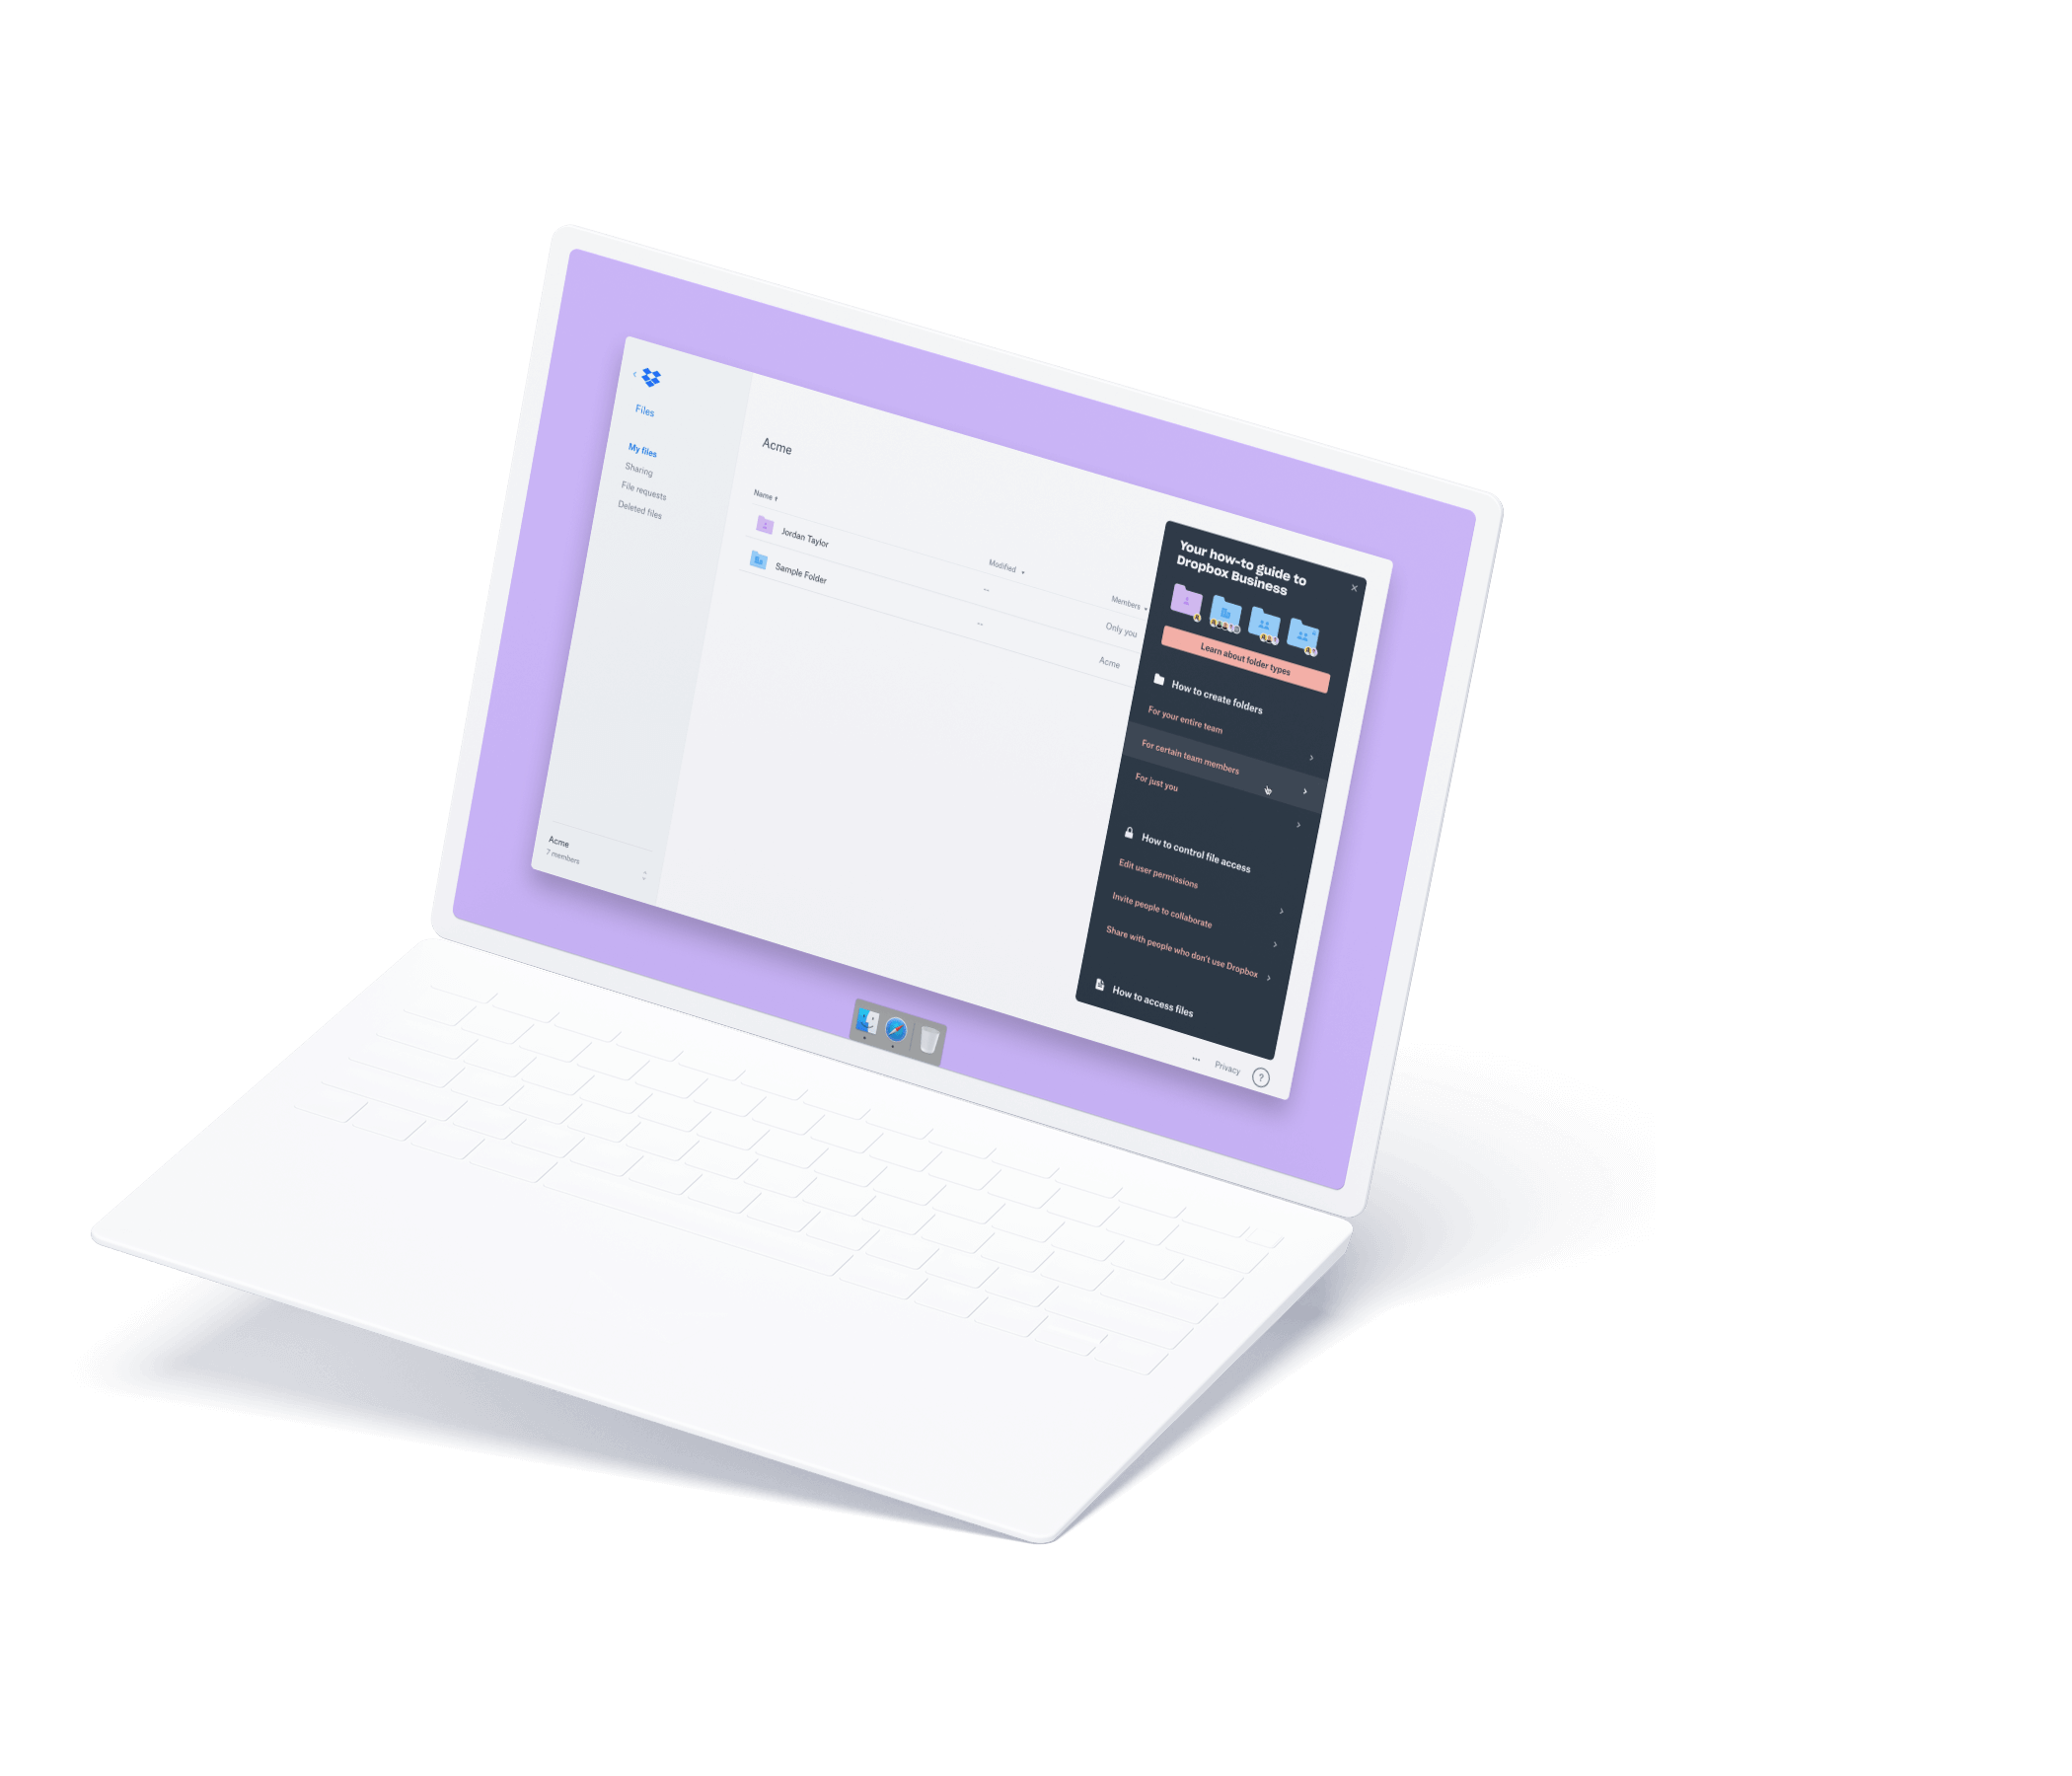 Laptop mockup showing In-App Education Module